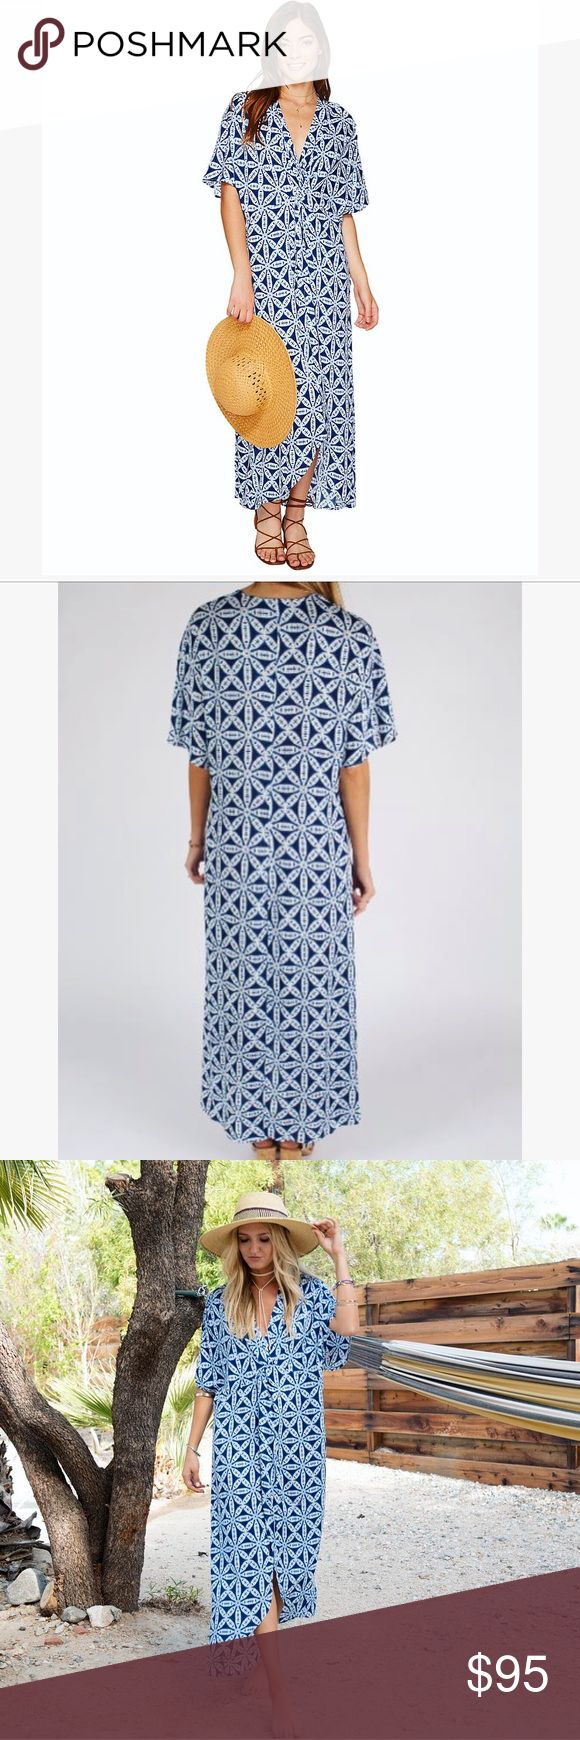 NWT! SHOW ME YOUR MUMU! Get Twisted Maxi Dress BRAND NEW!! Print: Wagon Wheel Cloud! Super adorable!! Can be dressed up w/ wedges or worn casually w/ sandals! Perfect for the season! Fits flowy & twists in the middle which makes it flattering! Only thing I wanted to point out was the dress has a small snag on it! I showed 2 pictures above...1 from far away (because you seriously can't see it all, even if you look for it) and 1 pic up close! You could get it easily fixed by a seamstress if…